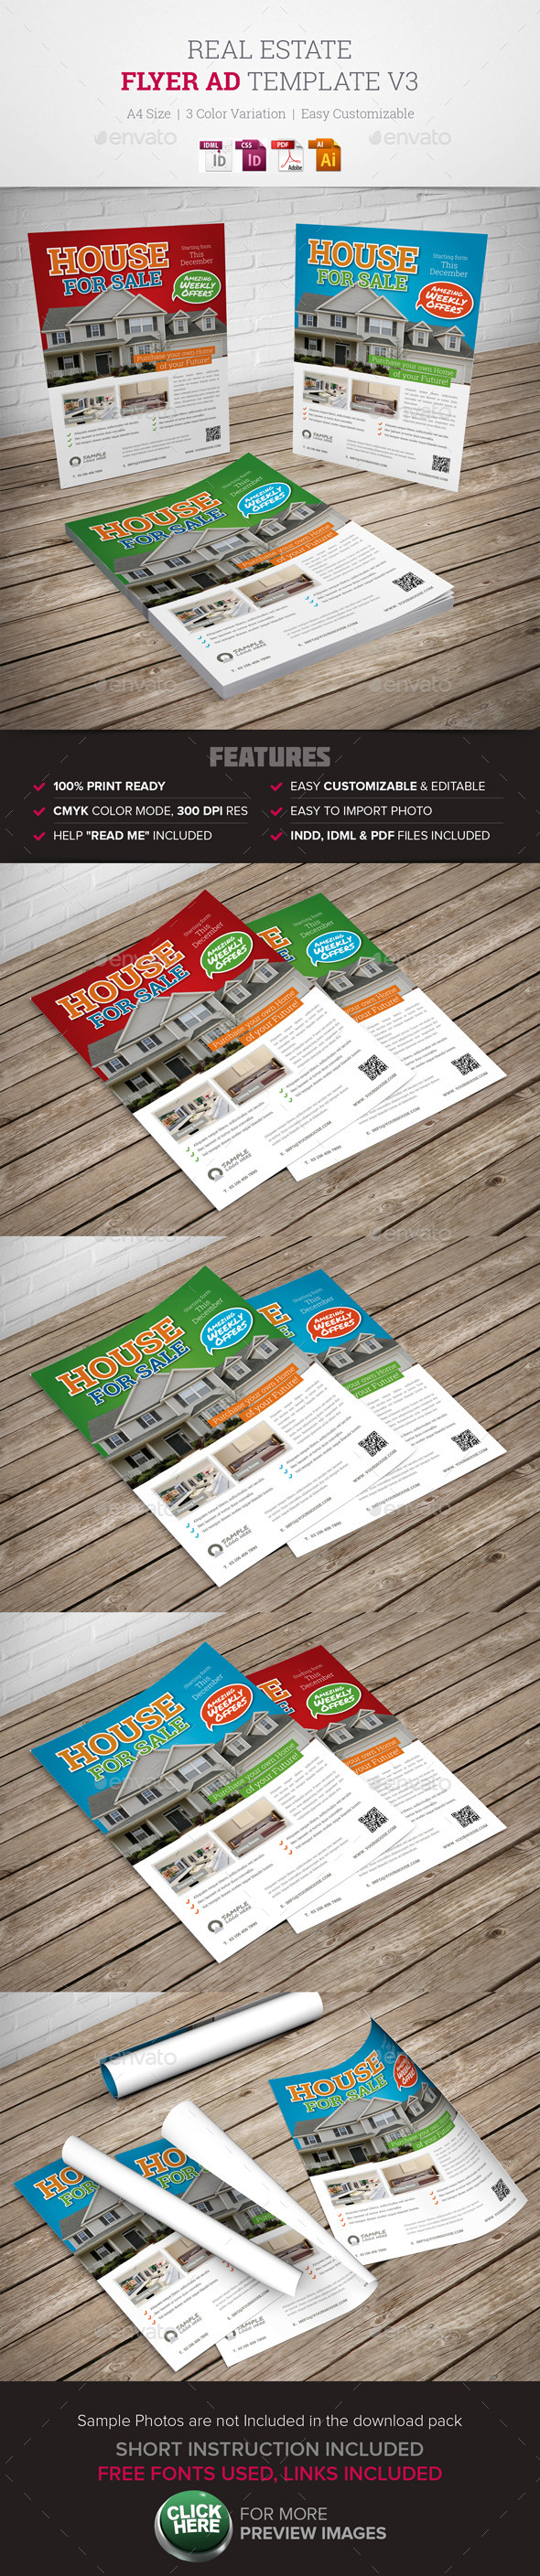 Real Estate Flyer Ad v3  - Corporate Flyers